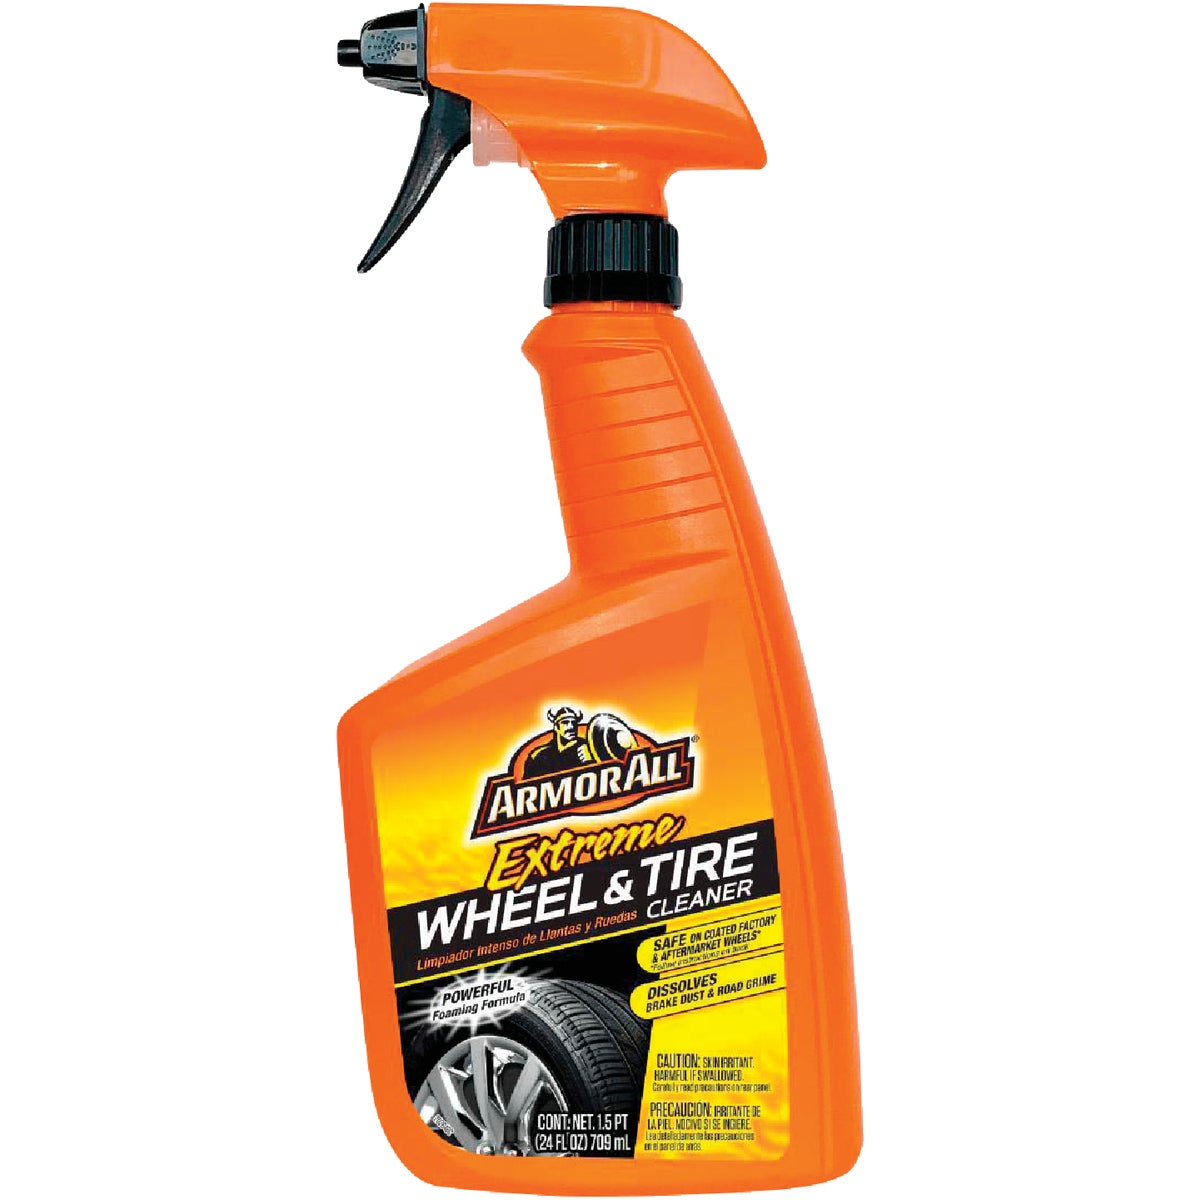 24OZ SPRAY WHEEL CLEANER - 78090 by Armored Autogroup